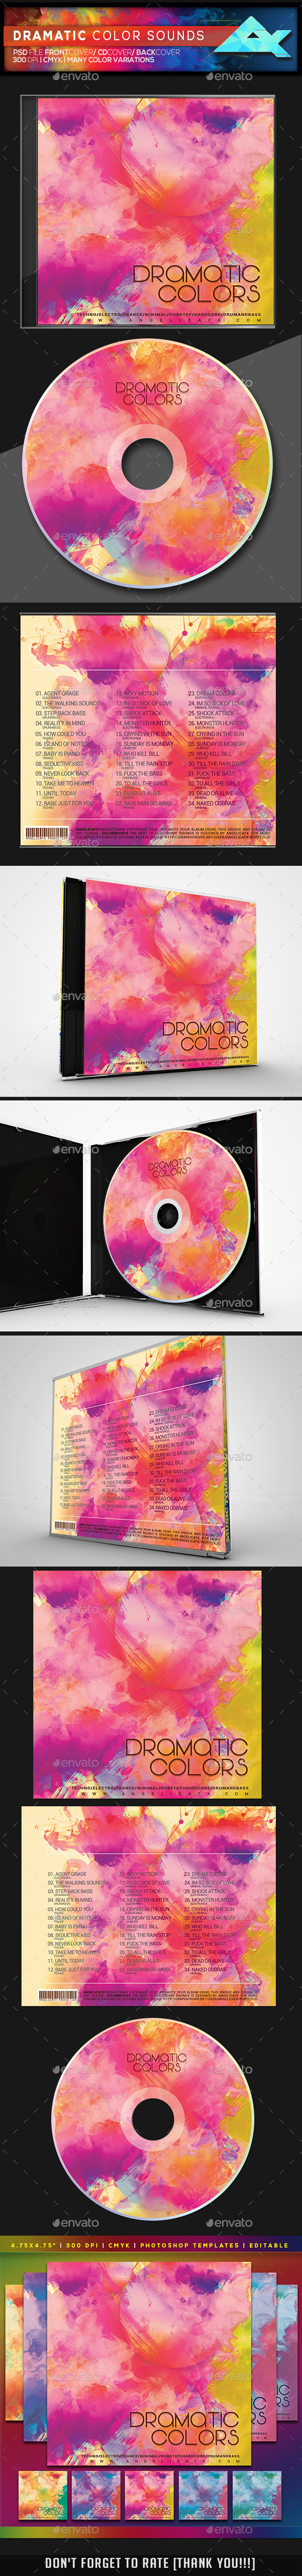 Dramatic Color Sounds CD/DVD Photoshop Template - CD & DVD Artwork Print Templates